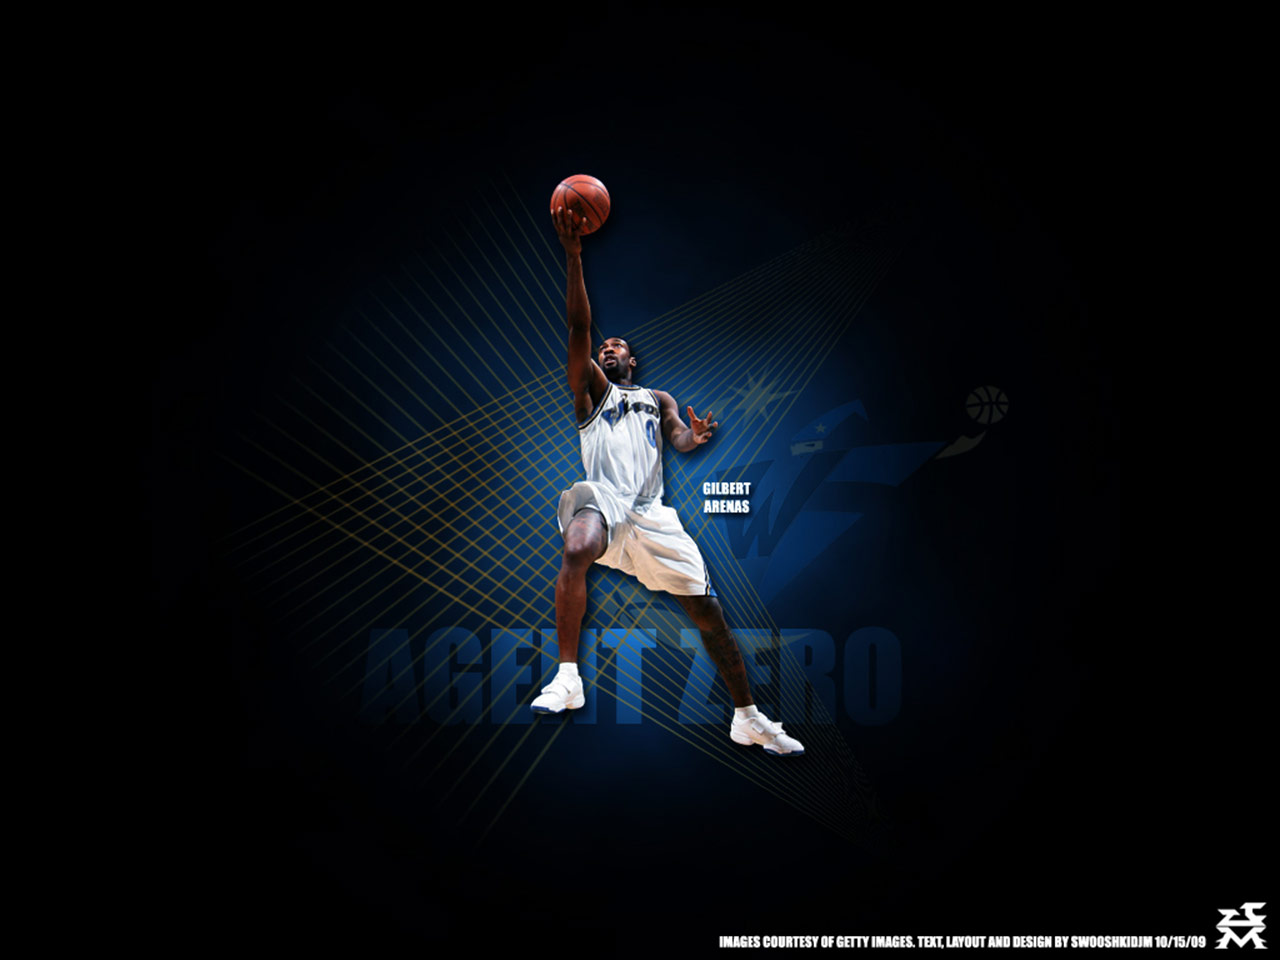 in my opinion i'll start with new wallpaper of Gilbert Arenas :)